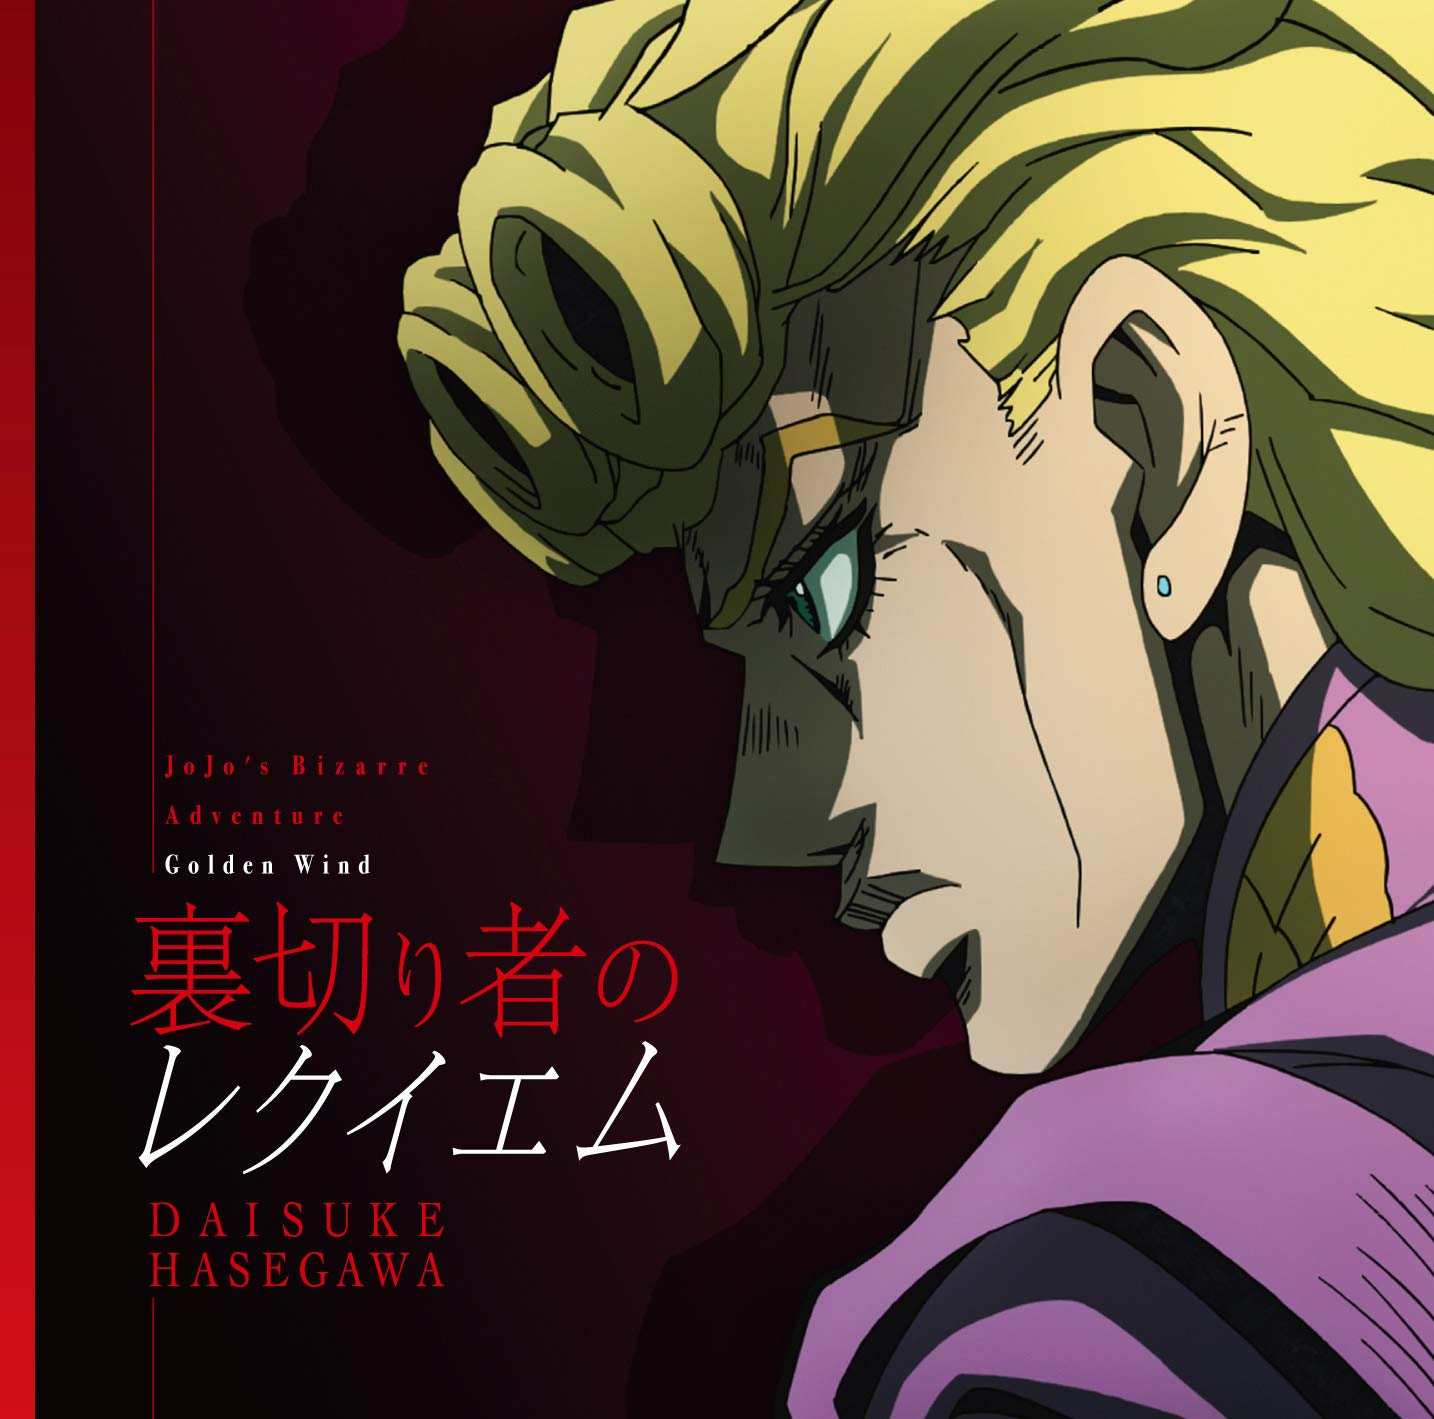 Uragirimono no Requiem | JoJo's Bizarre Encyclopedia